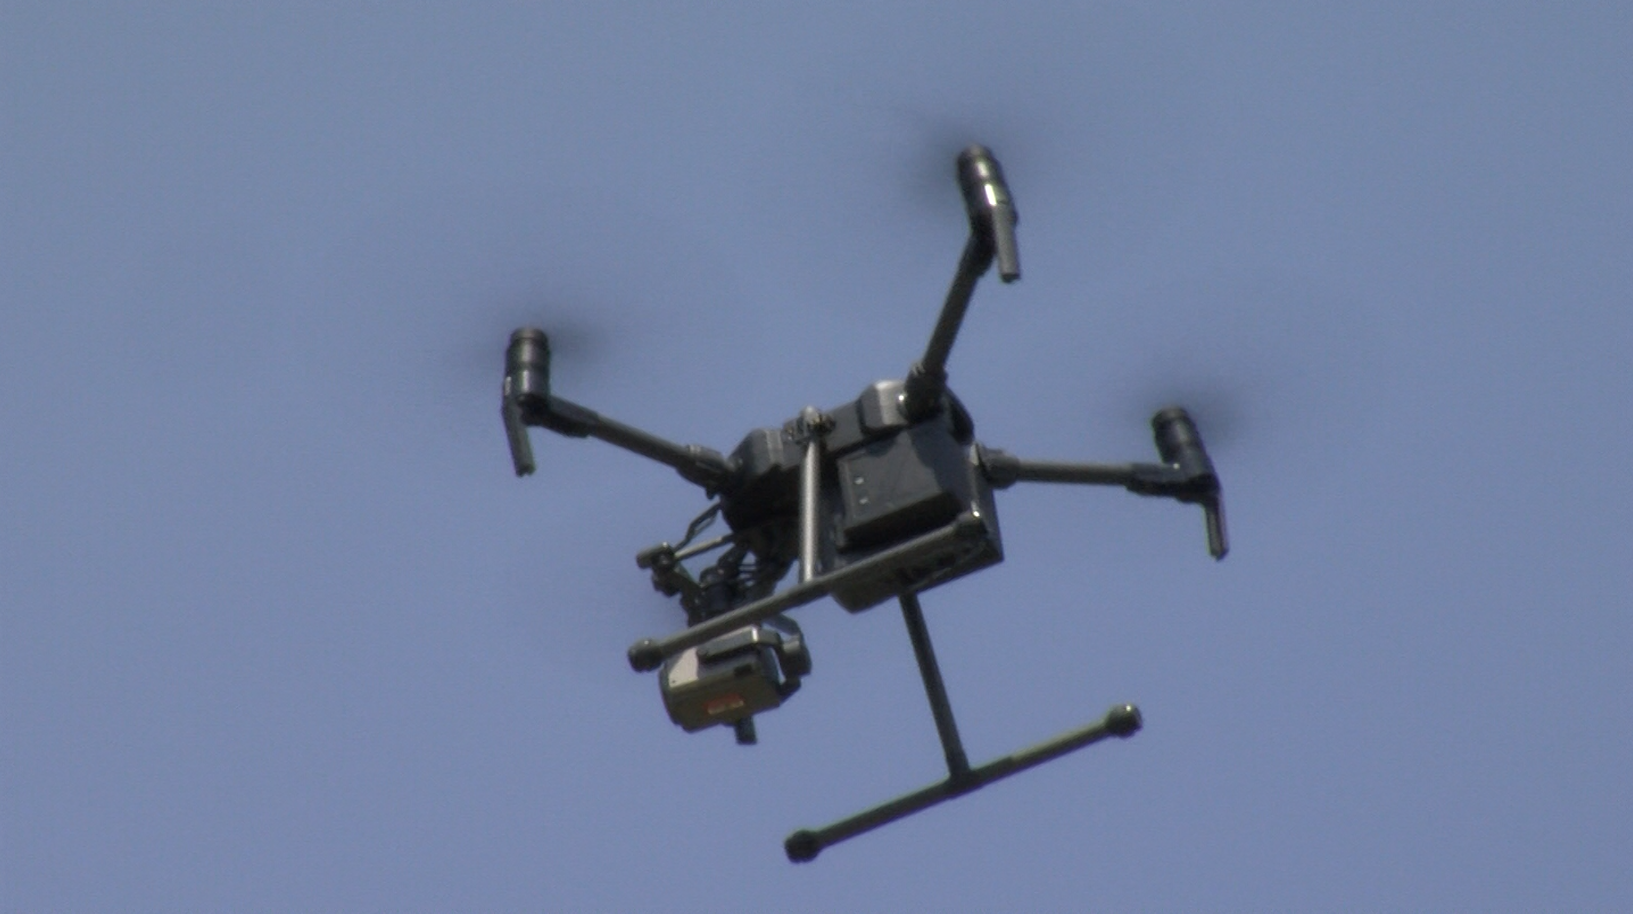 Military To Test Urban Drone Tracking System In San Diego, National City This Week